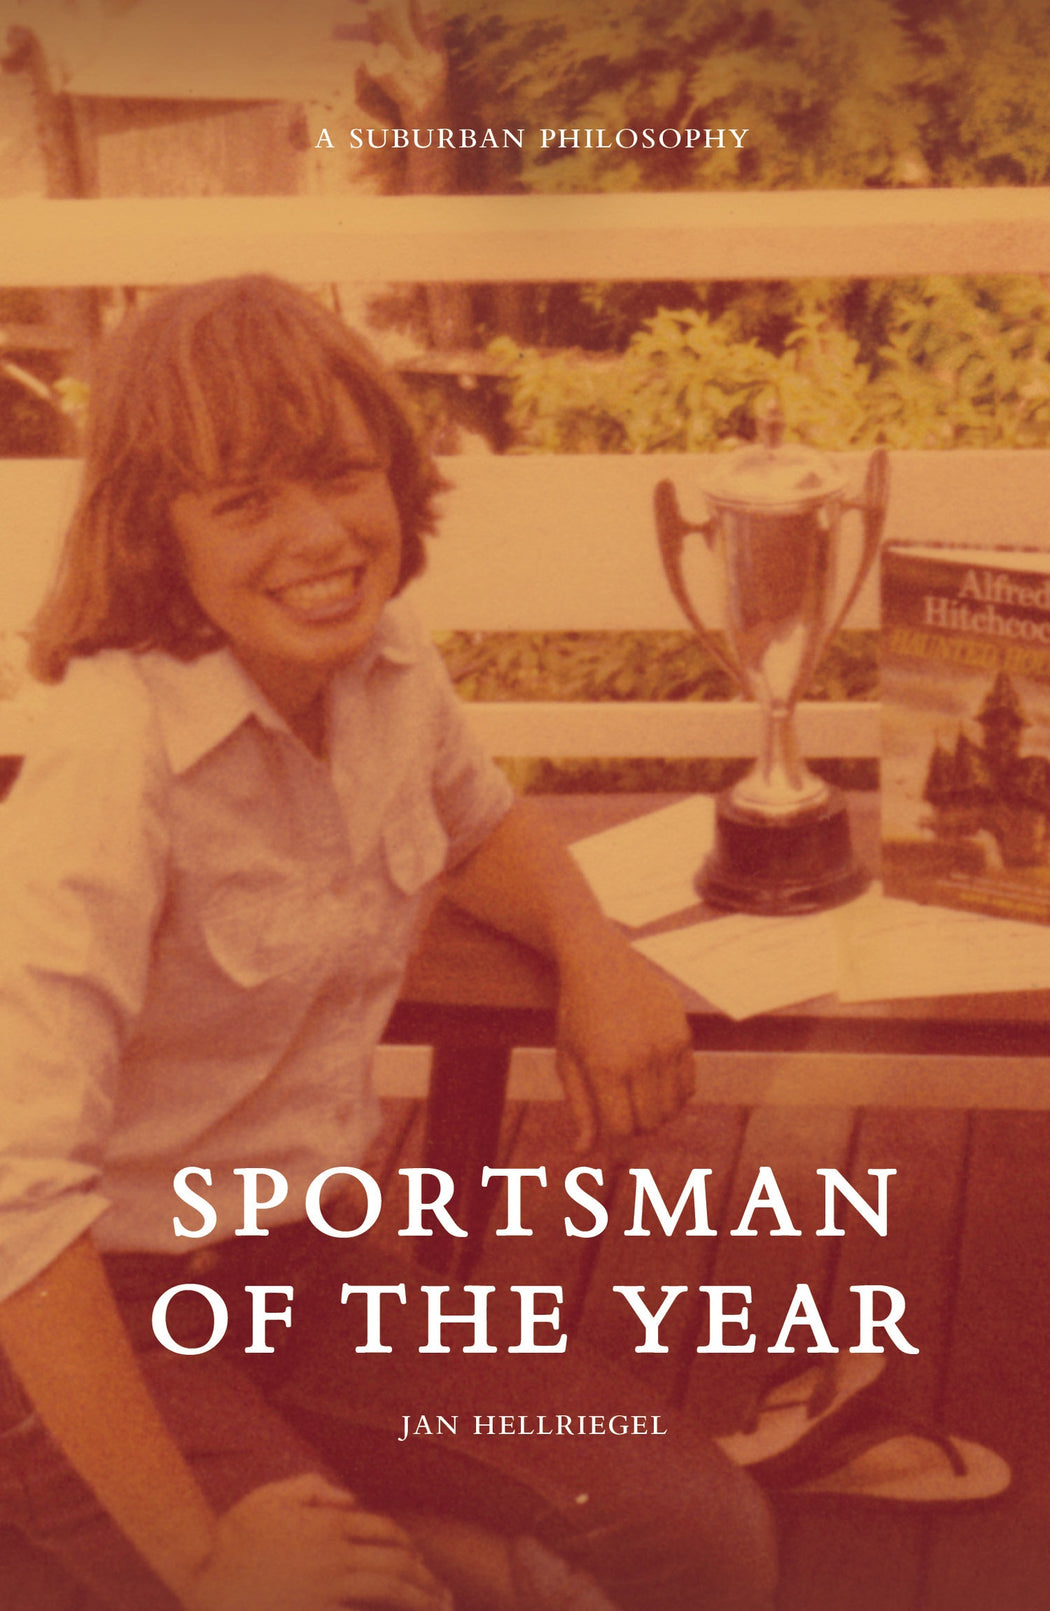 SPORTSMAN OF THE YEAR - A Suburban Philosophy (Book only)